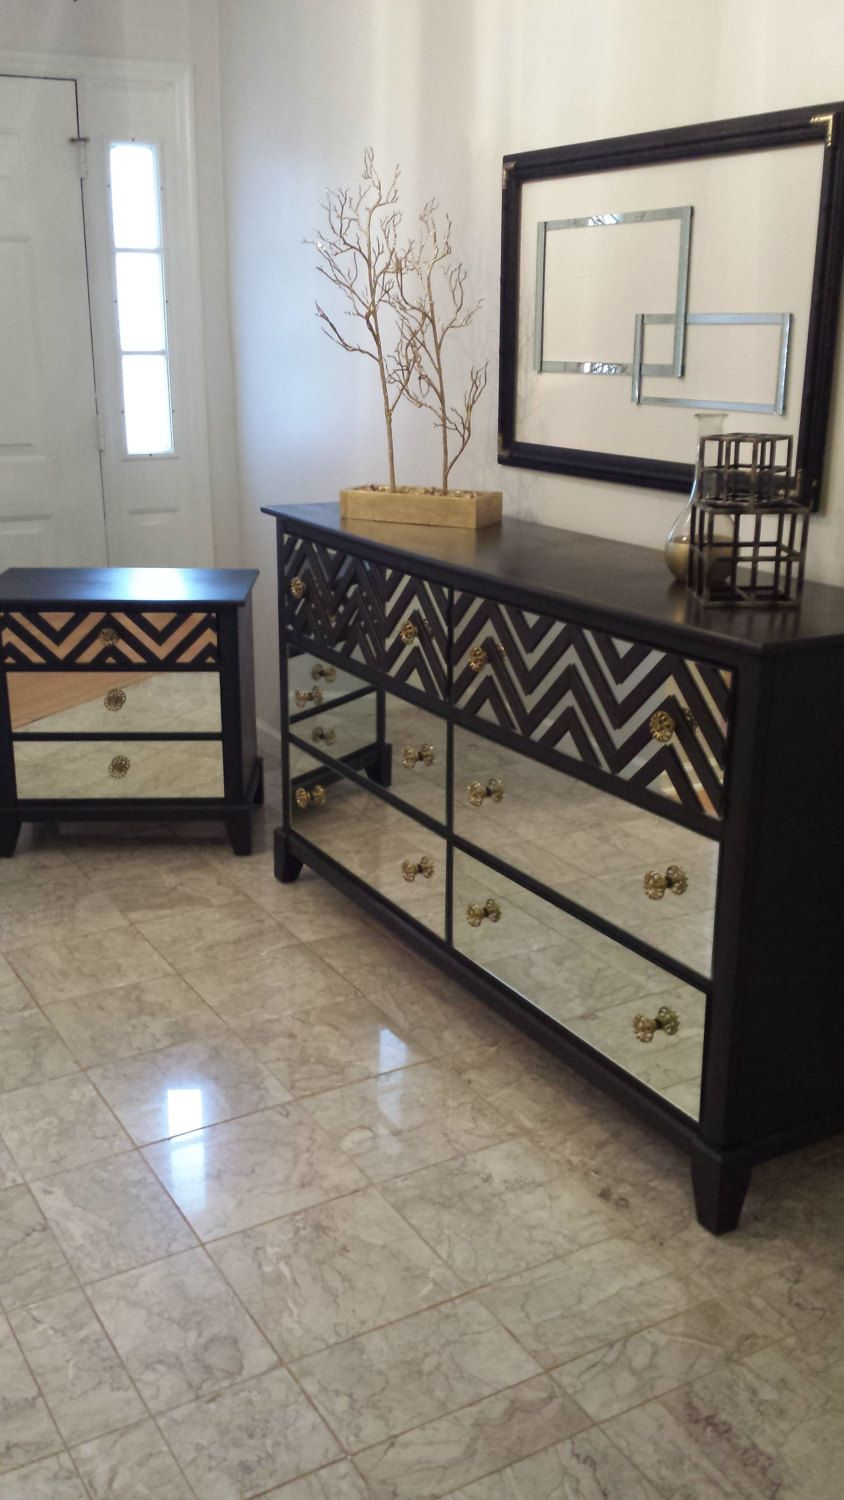 black mirrored bedroom furniture photo - 2 in 2019 ...